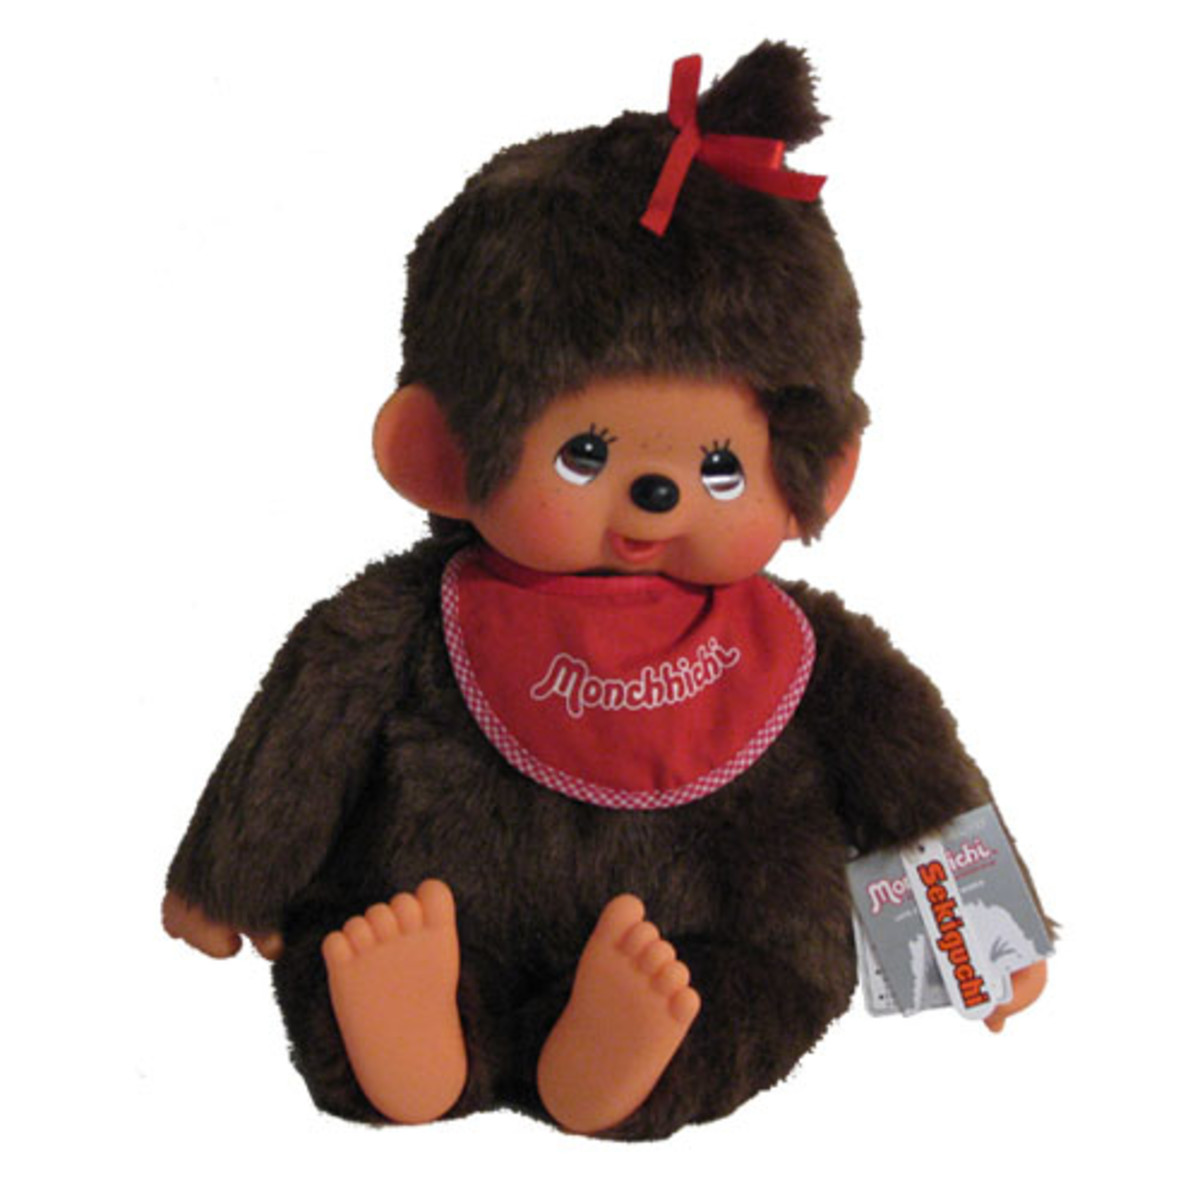 The Monchhichi doll is an 80s fad that will get a big reaction.